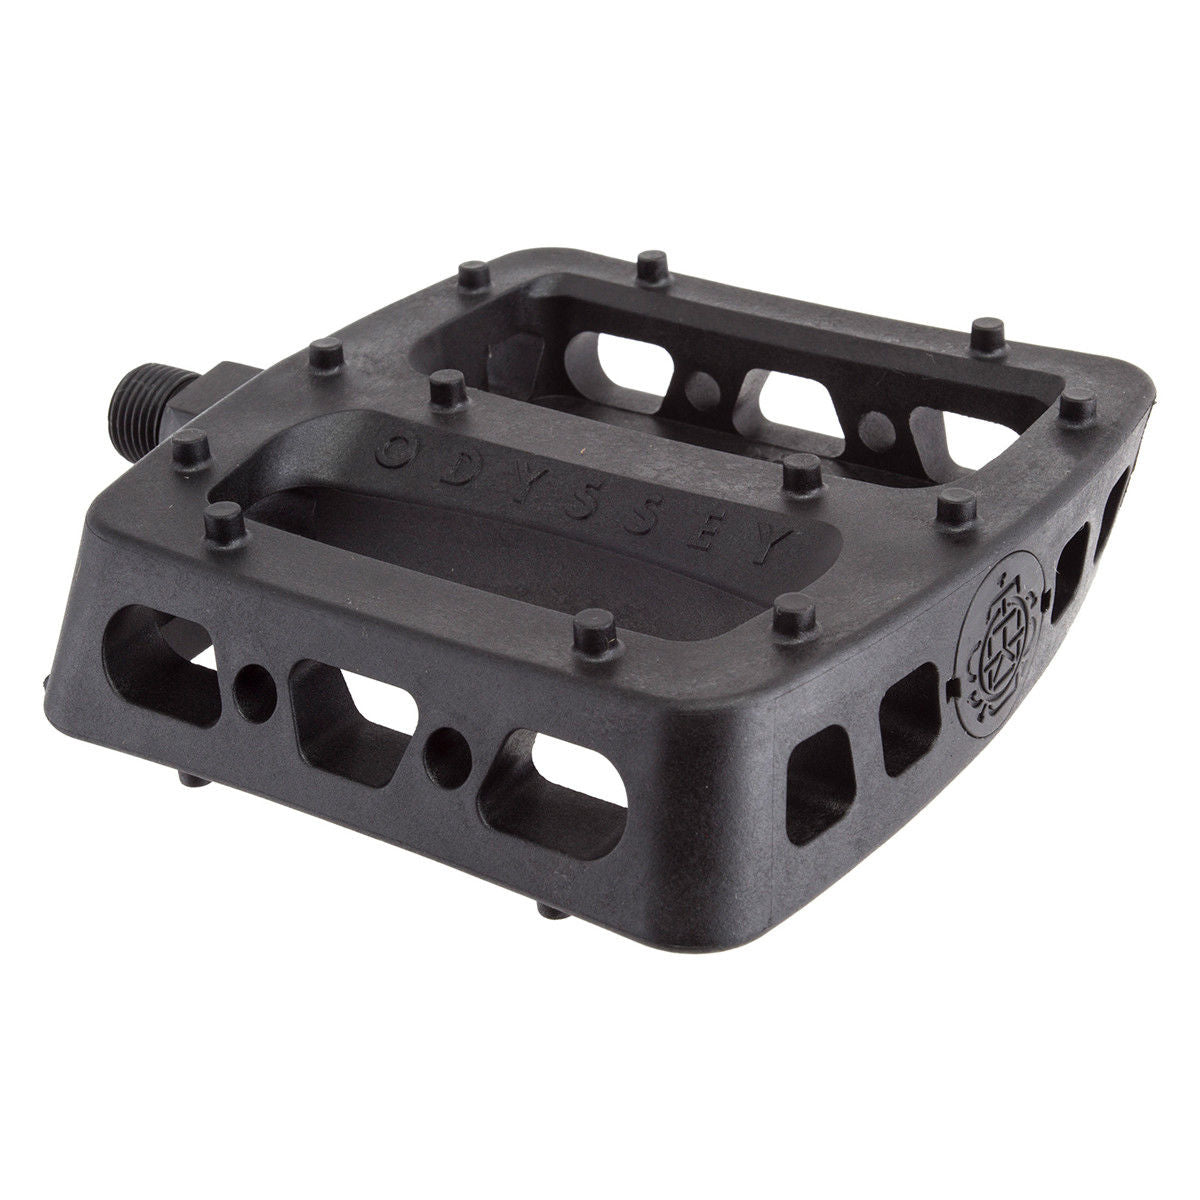 Odyssey Twisted PC PRO BMX Platform Pedals - Black - 9/16""